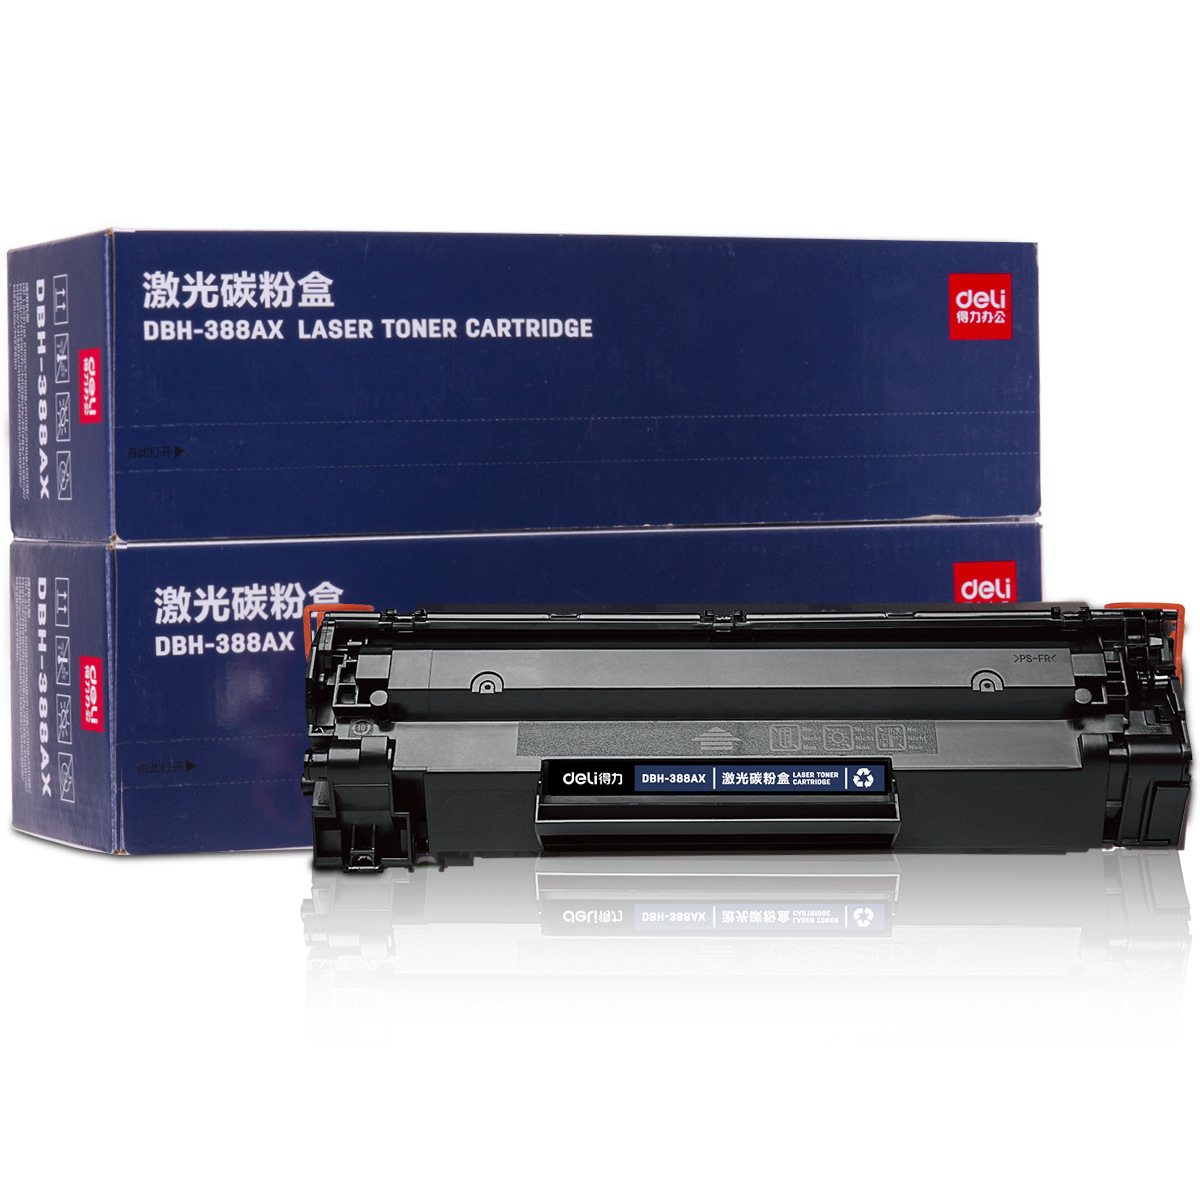 DELI Powerful laser toner cartridge DBH-388AX2 toner cartridge suitable for HP ink cartridge P1007/P